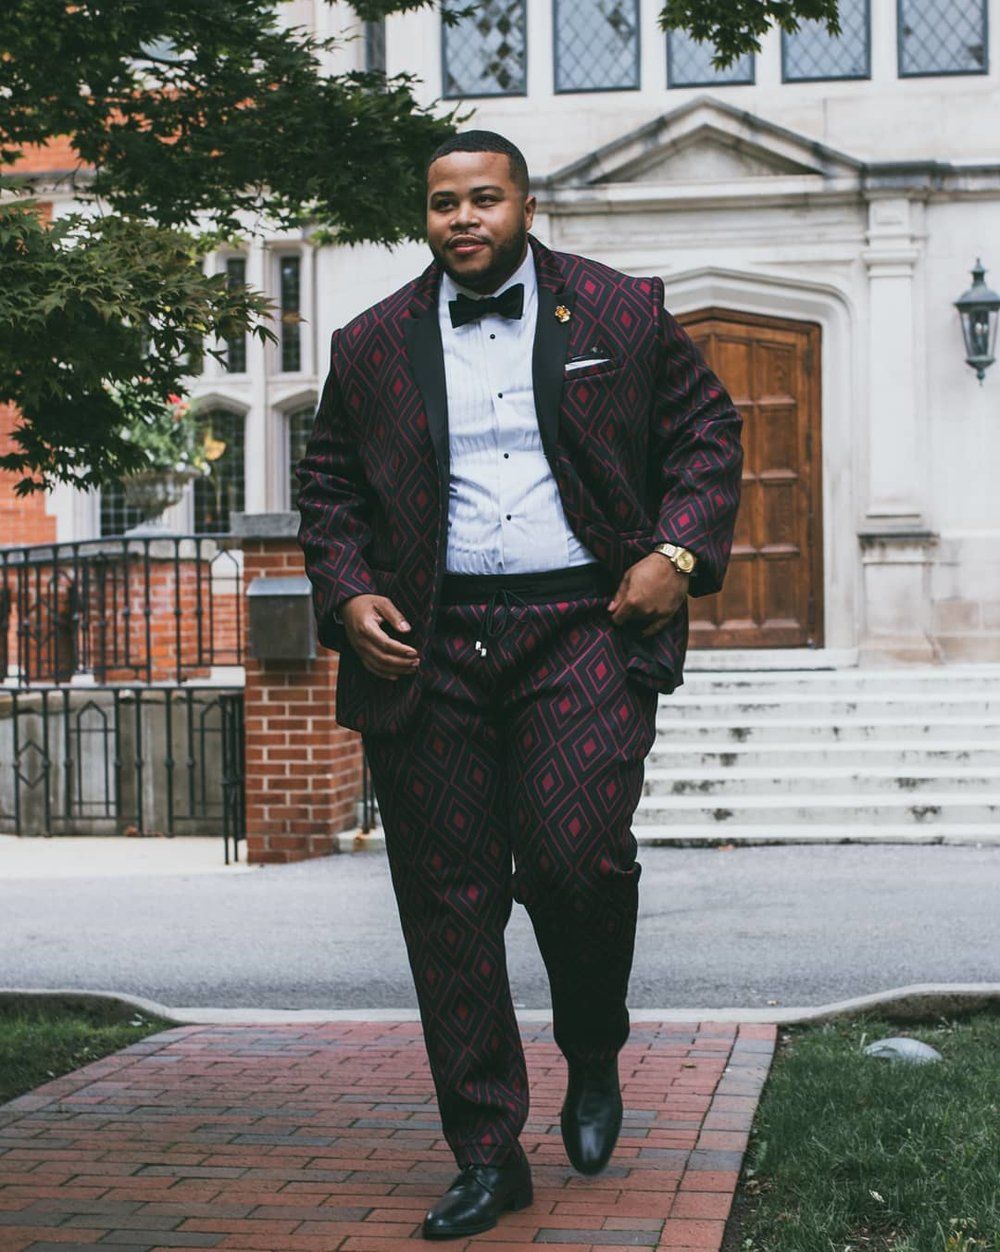 Destin Grayson   is a menswear blogger based in Columbus, Ohio. By day, he works in a nonprofit. He wants to inspire people through fashion and creative storytelling.